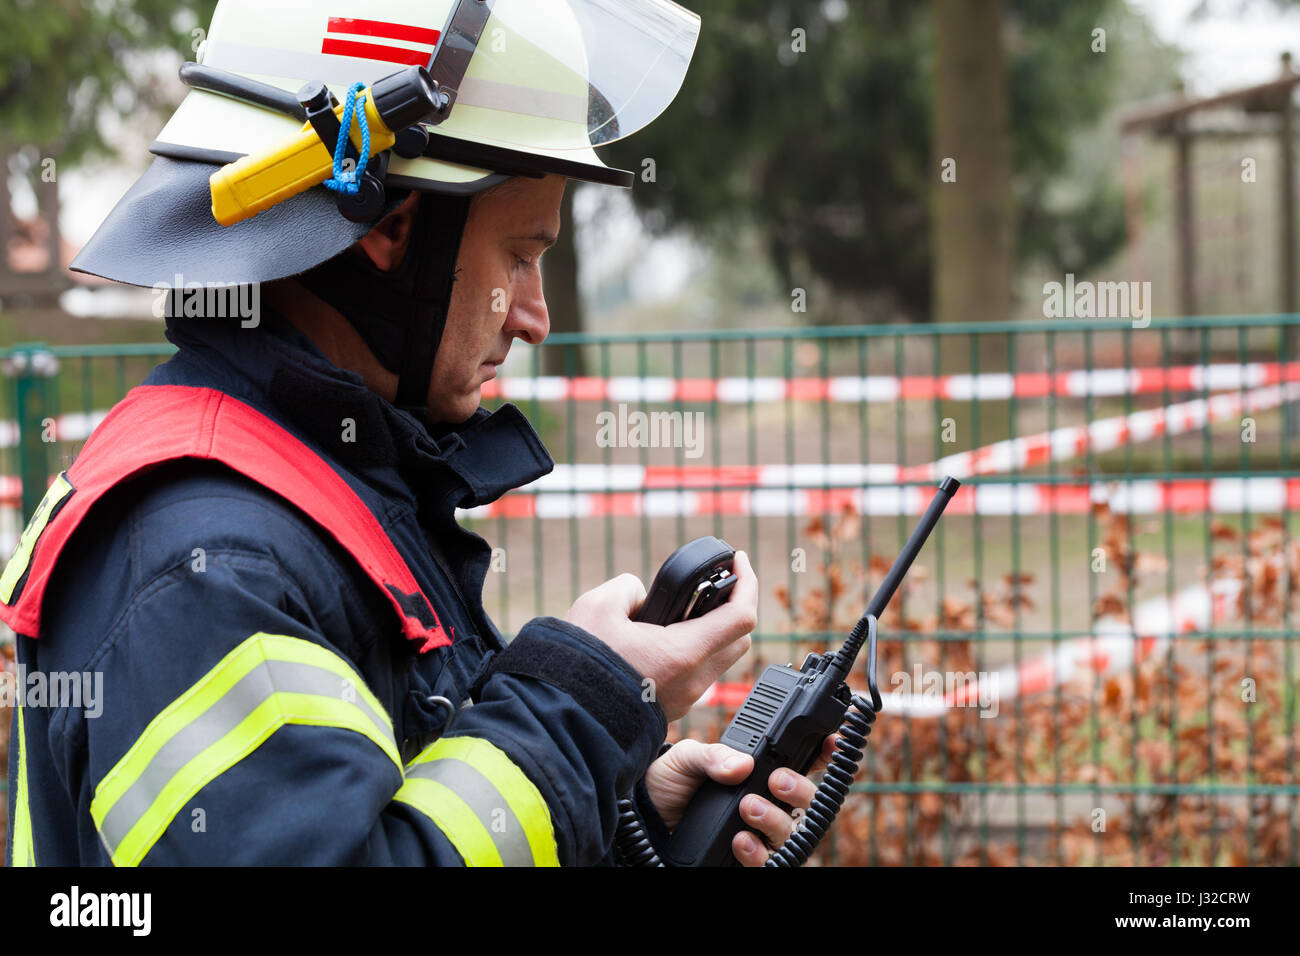 German firefighter leader used a walkie talkie in action - Stock Image